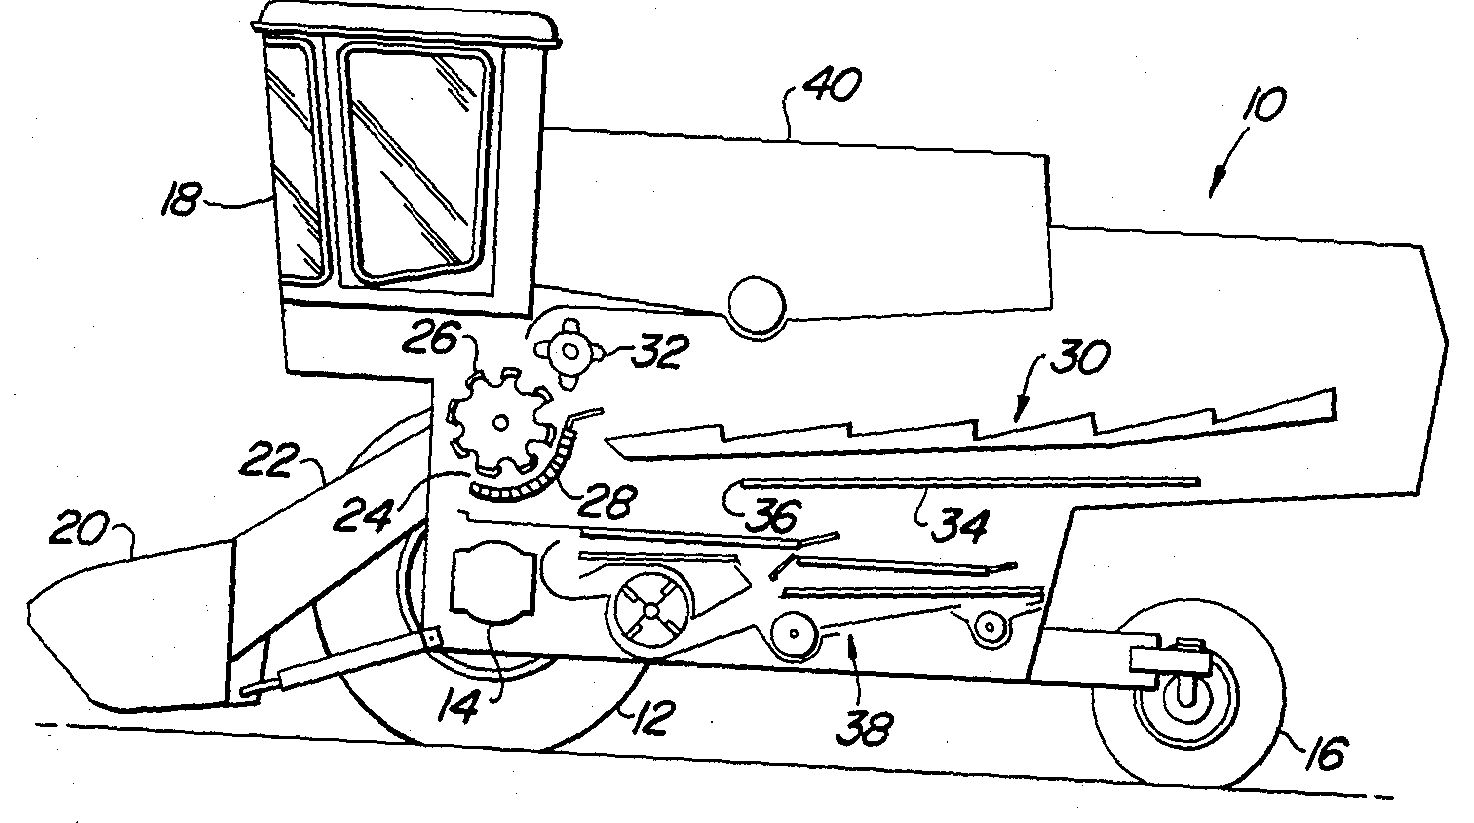 Parts Of A John Deere Combine Harvester Diagram : File combine parts g wikimedia commons